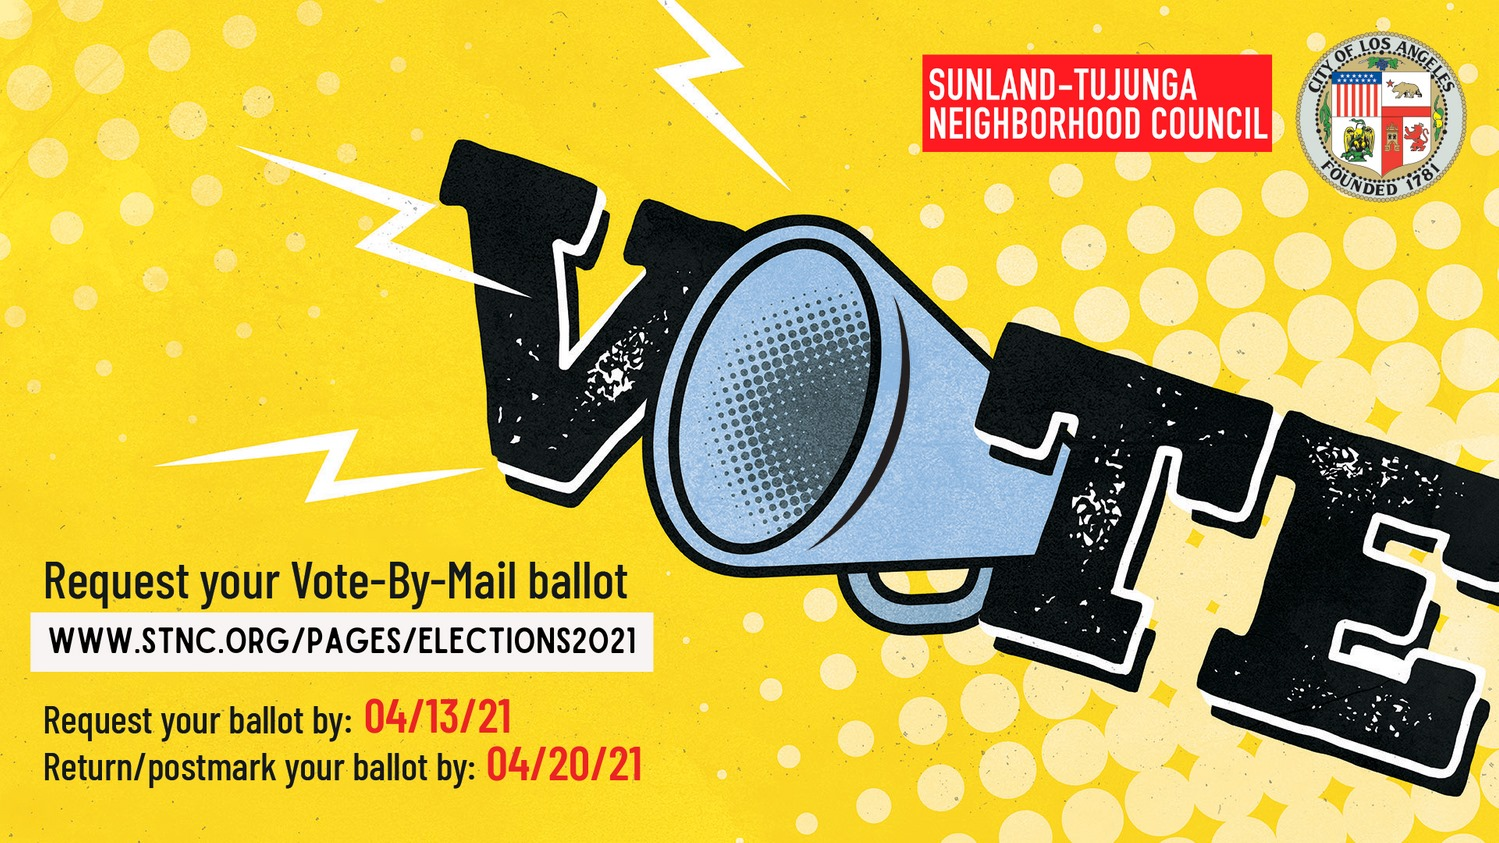 Request Your Neighborhood Council Vote-By-Mail Ballot